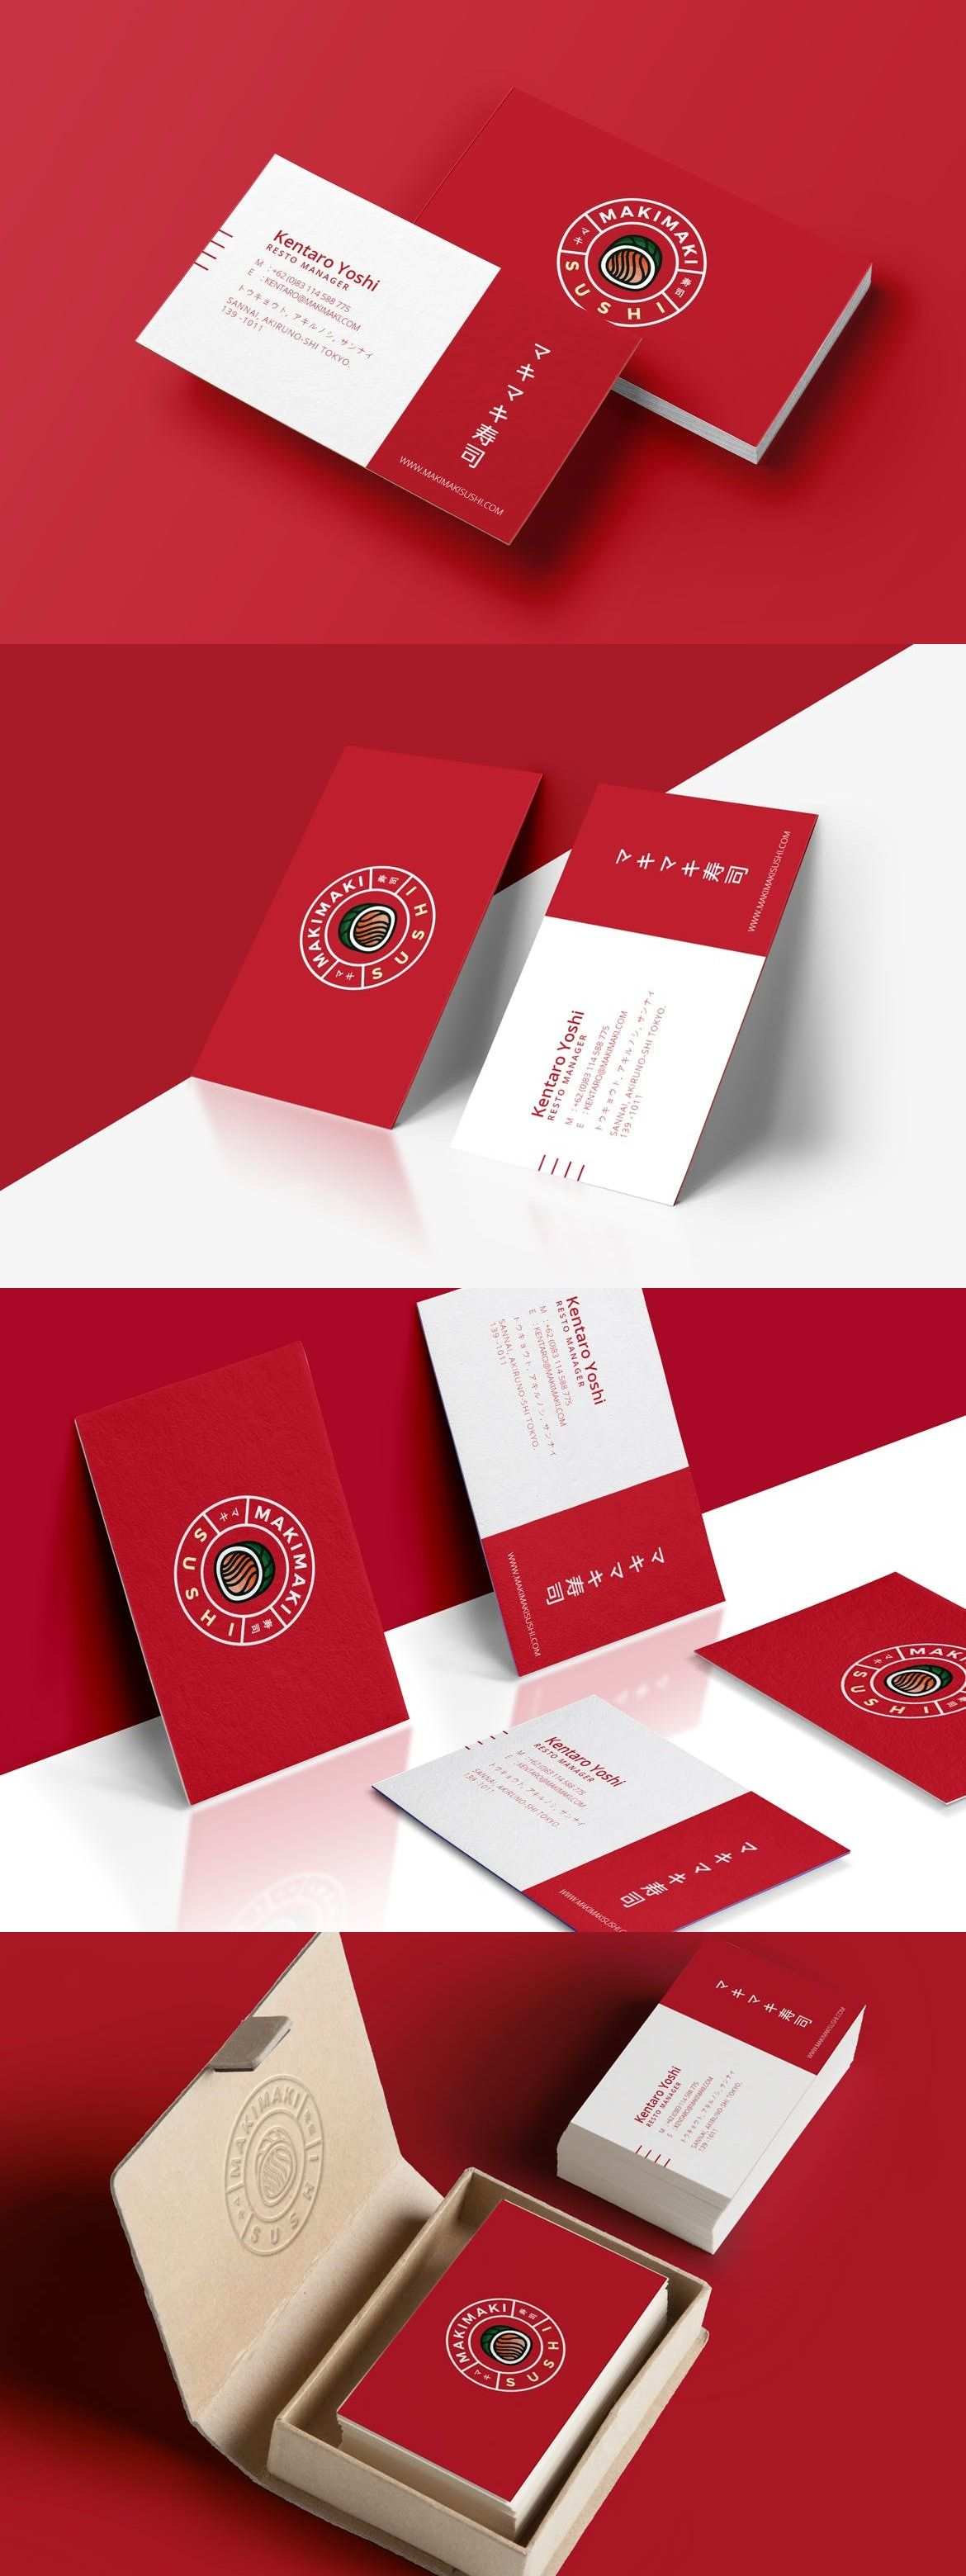 Sushi Business Card Adobe InDesign Illustrator Identity Food O Download Unlimited Items On Envato Elements